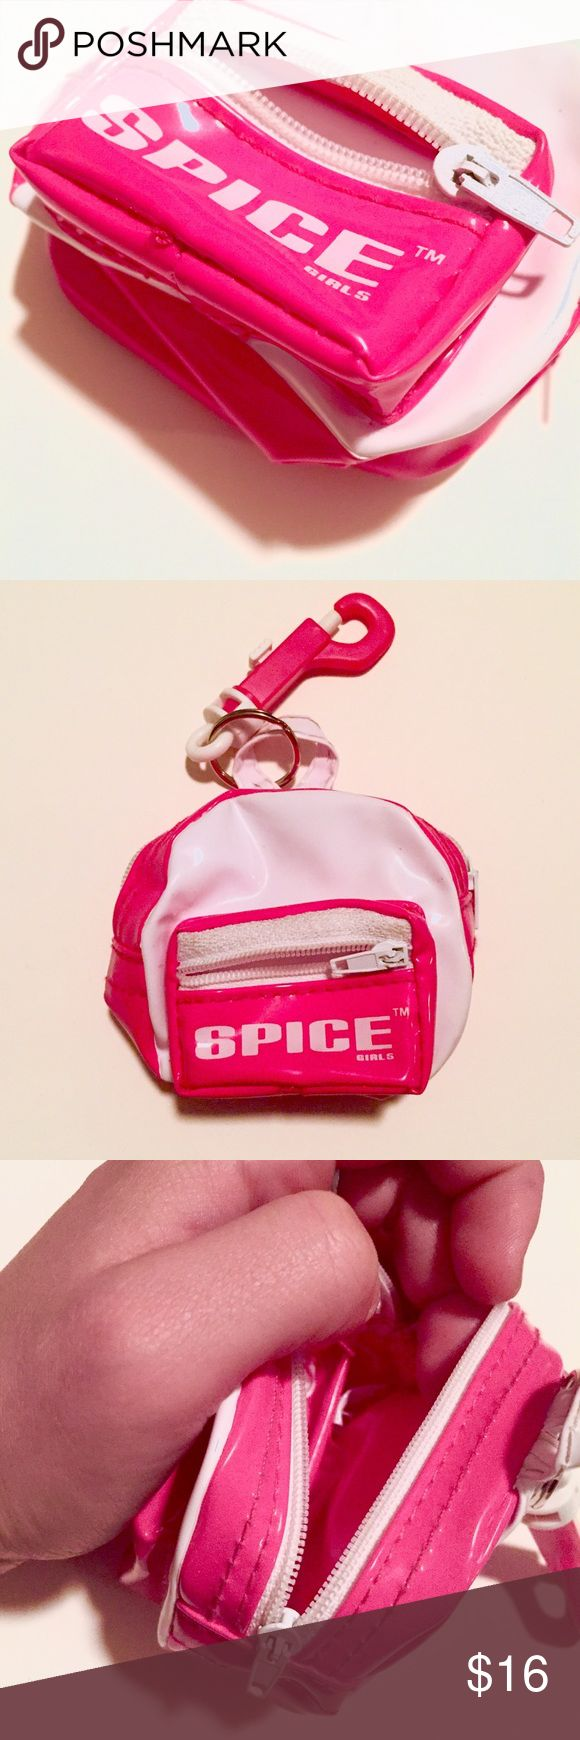 Teeny Weenie SPICE GIRLS Backpack Coin Purse 😍 😂😂Can this get any more 90s ? This adorable little plastic mini backpack/ coin purse/ keychain is hot pink & the Spice Girls logo is printed on the front pocket. Serious adorable retro accessory to clip on your bag or keyring. 🌺 Girly • 90sstyle • 90sgirl • SpiceGirls • 90skids • Old school • Teen dreams Accessories